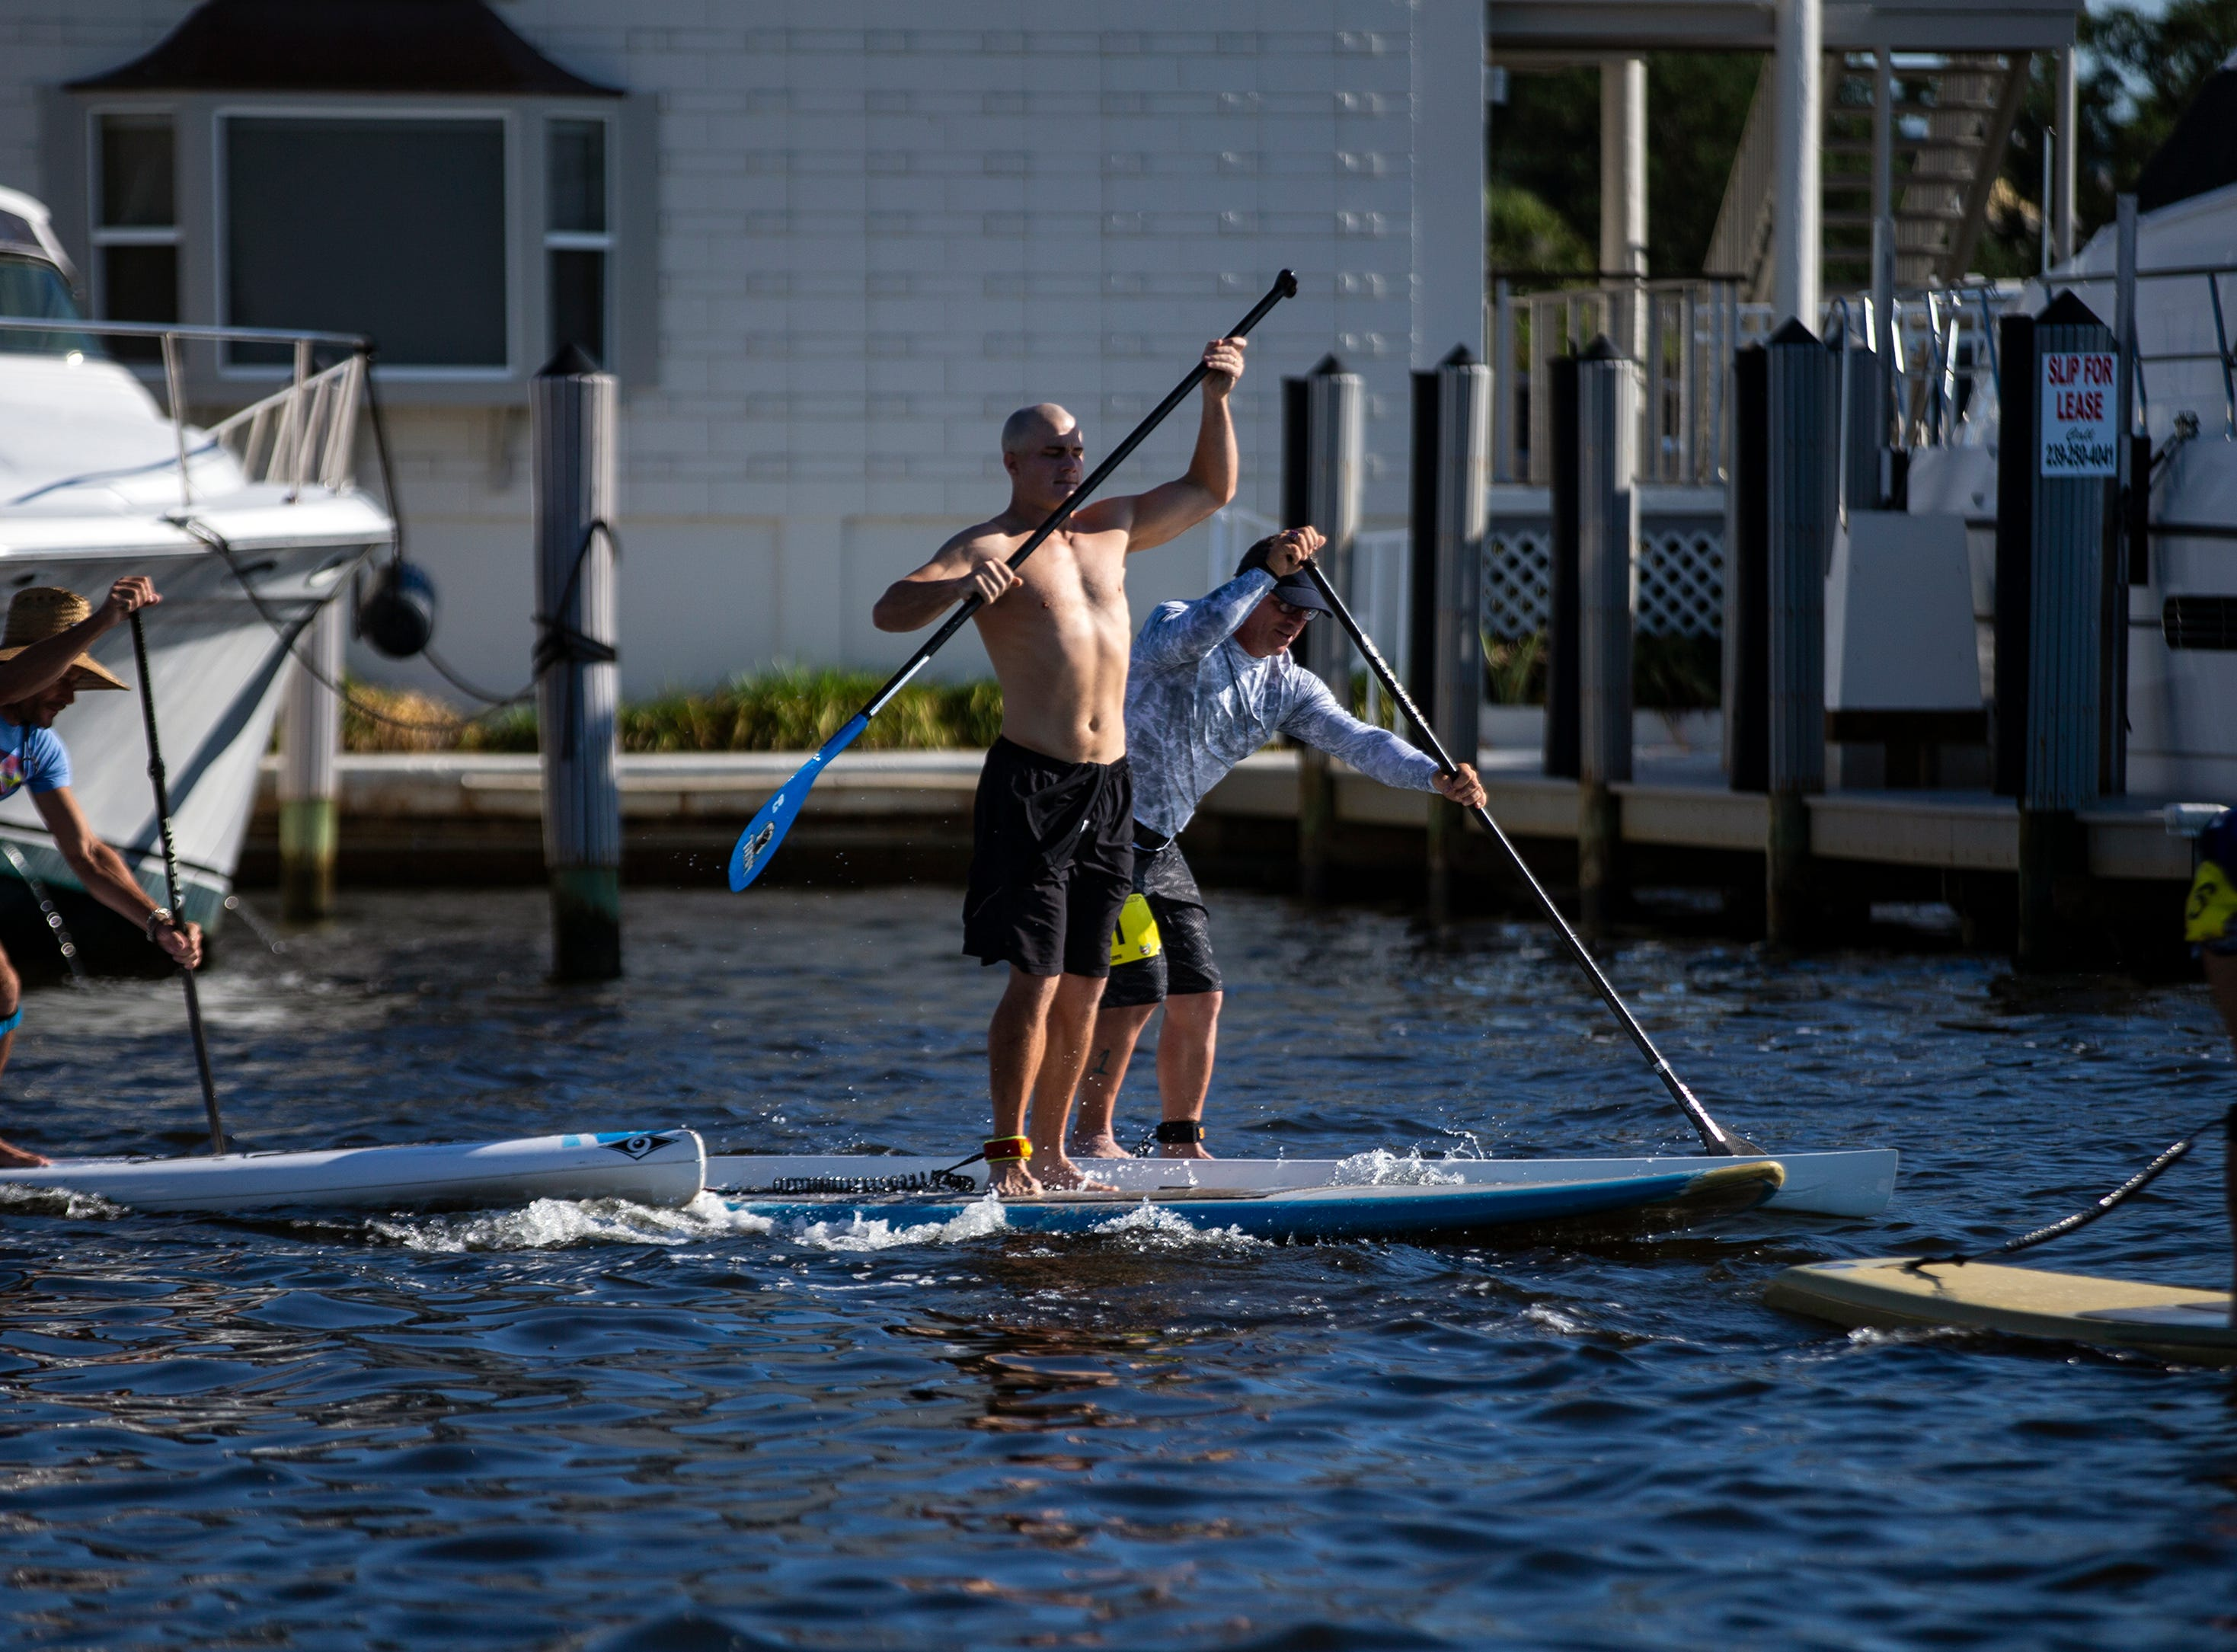 Amateur stand up paddleboard racers compete, Saturday, May 11, 2019, at the 43rd annual Great Dock Canoe Race at Crayton Cove in Naples.